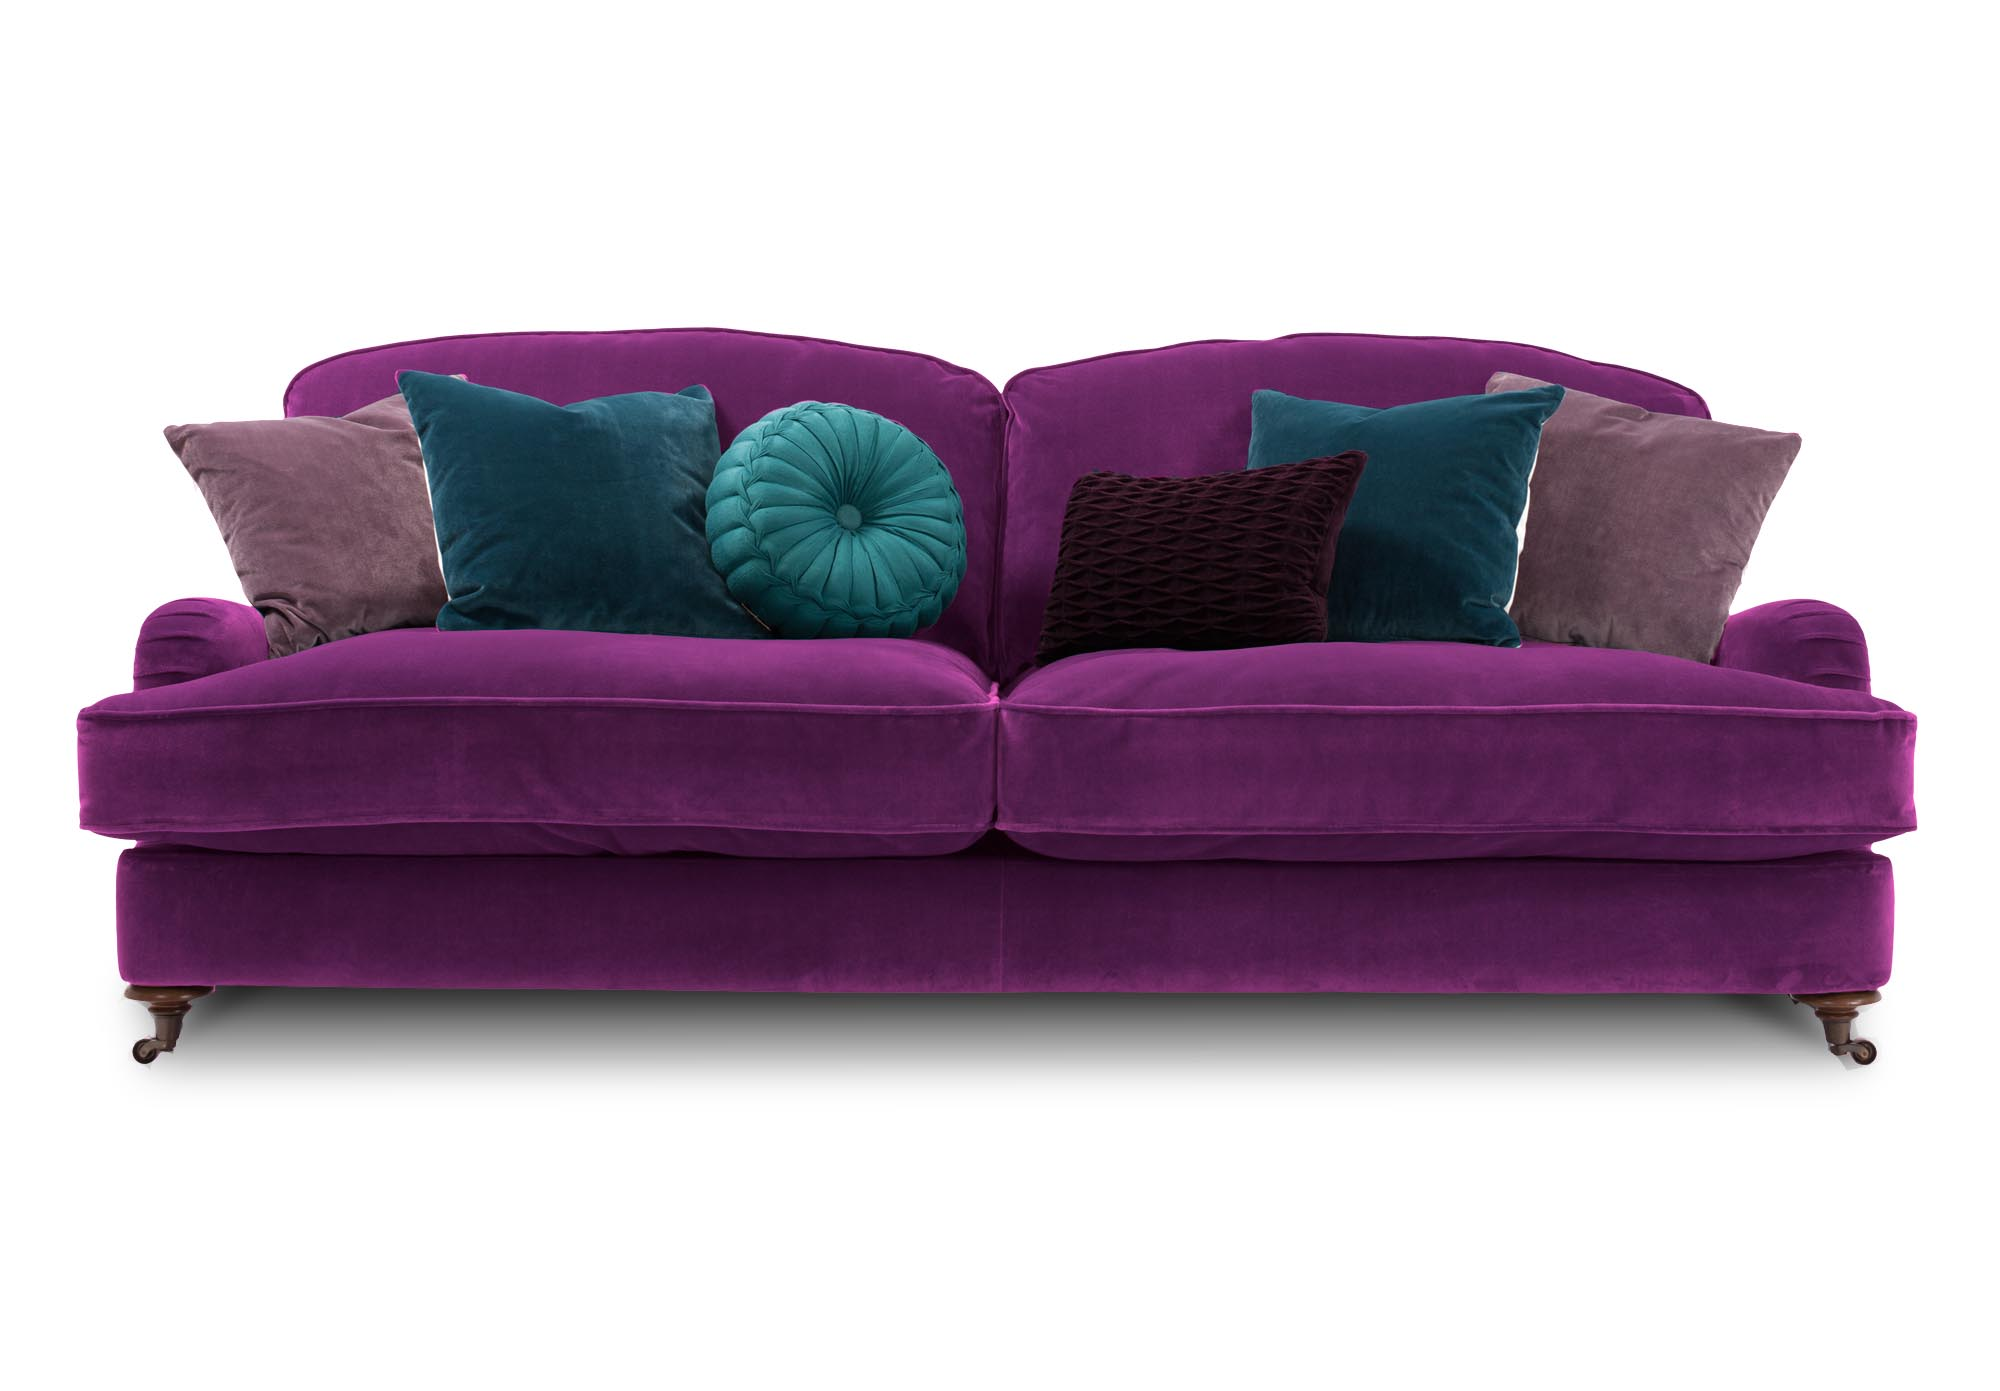 Harlequin Isabelle 3 Seater Sofa From Furniture Village